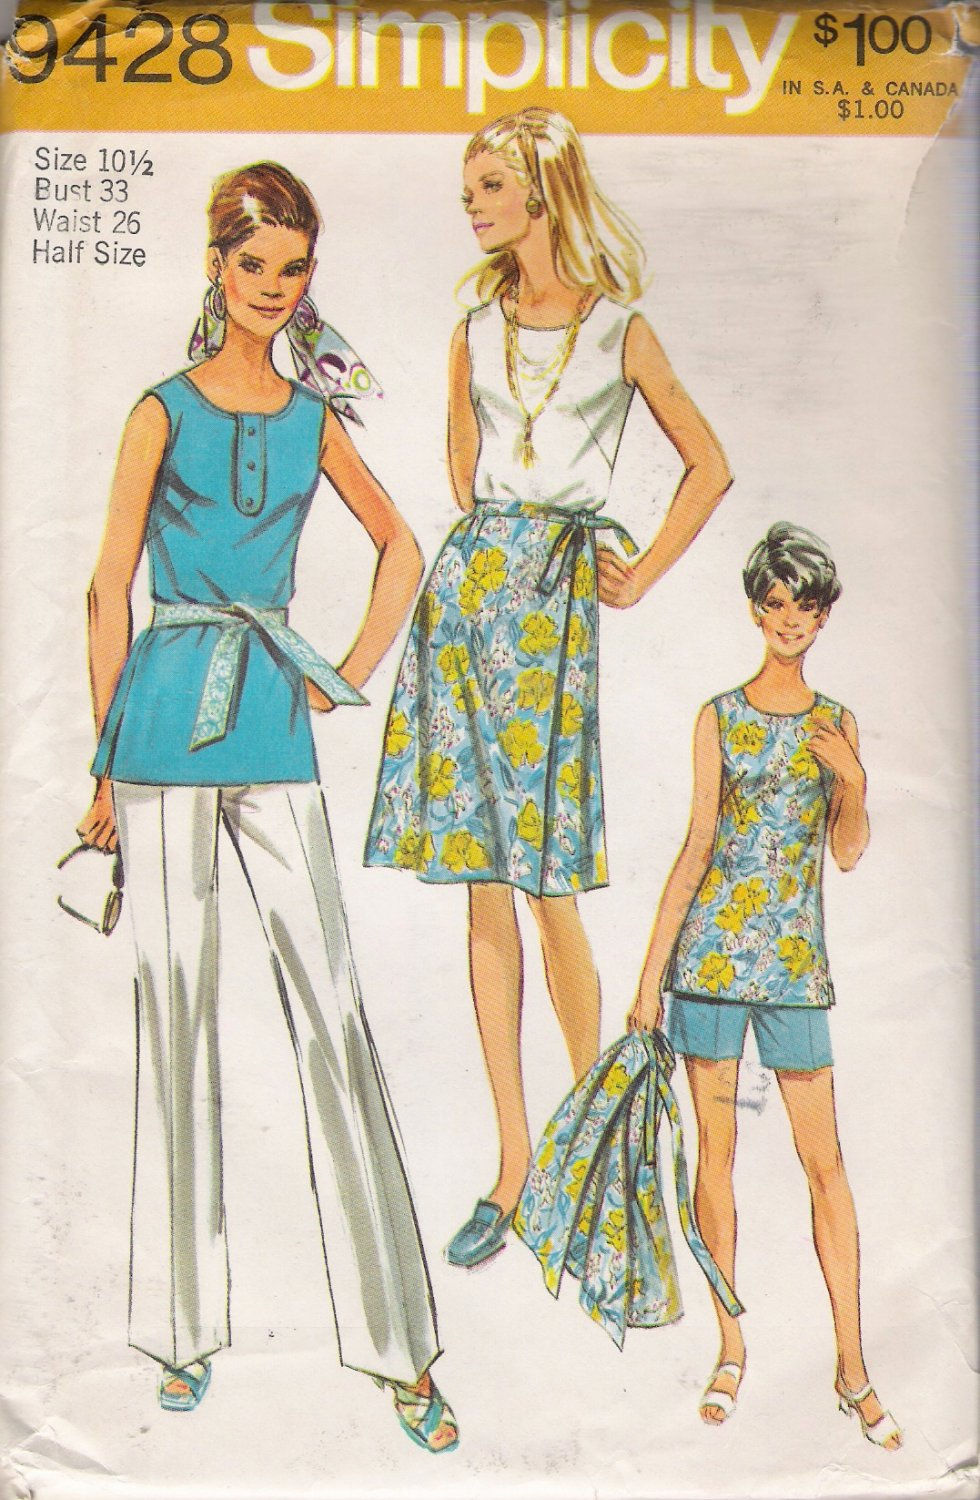 Vintage Sewing Pattern Misses' Pants Tunic Wrap Skirt Size 10.5 Simplicity 9428 UNCUT